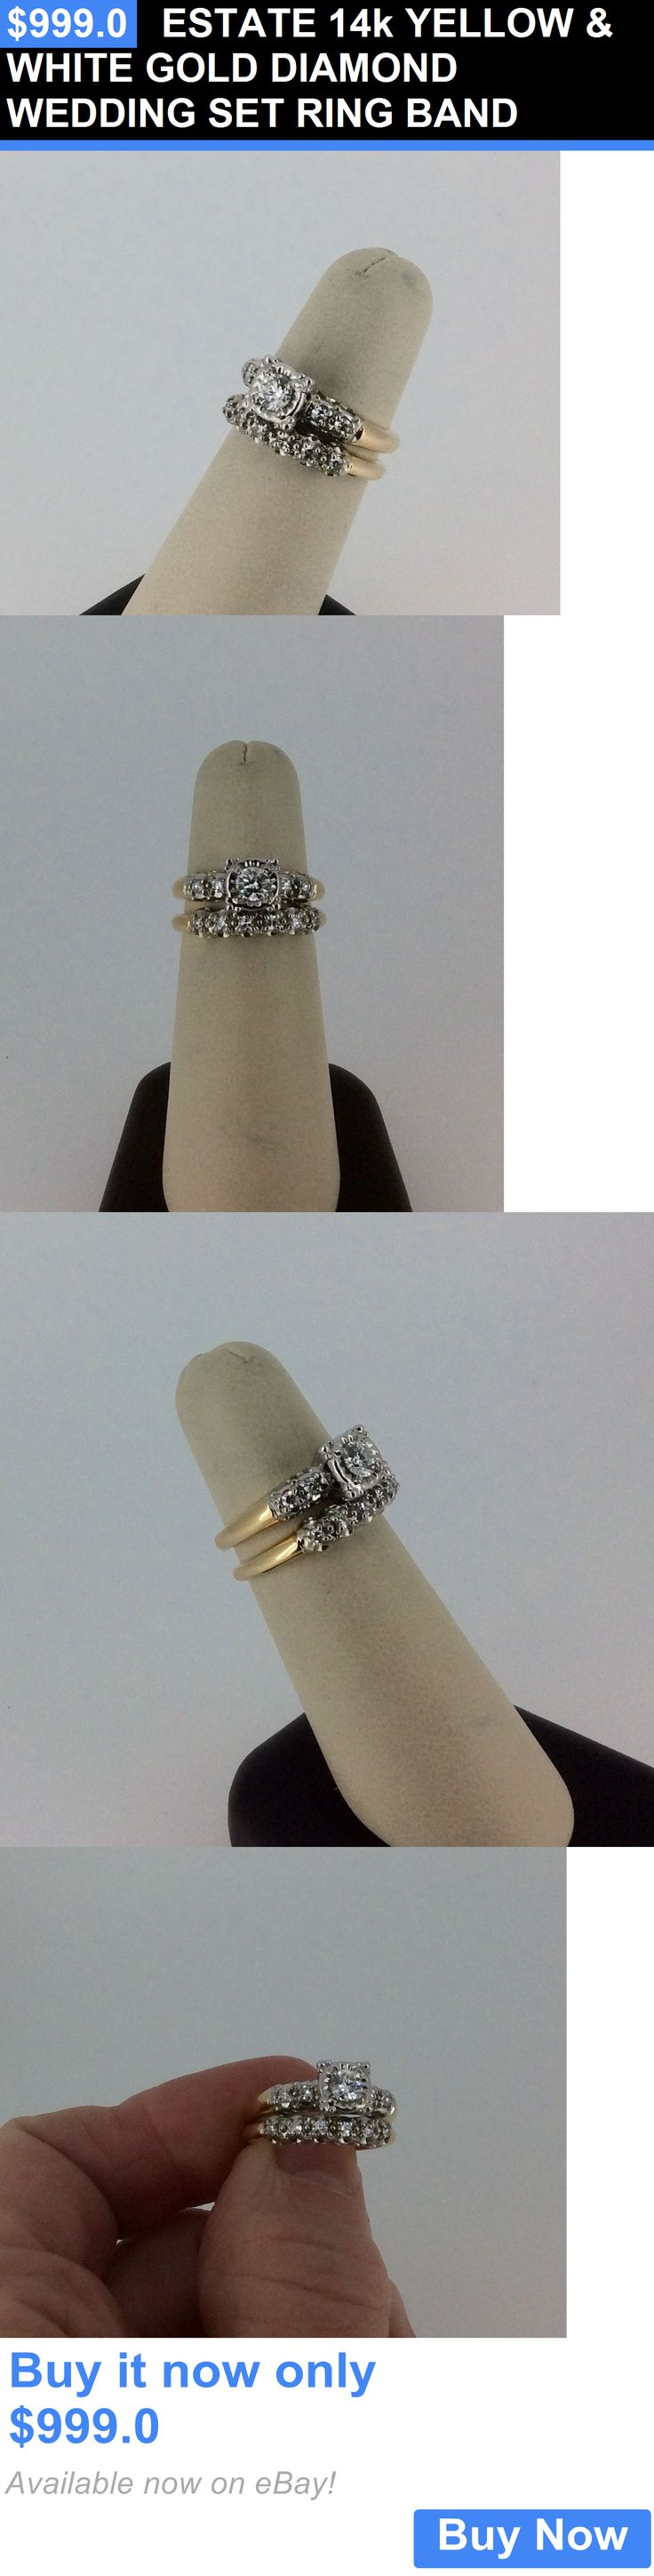 jewelry: Estate 14K Yellow And White Gold Diamond Wedding Set Ring Band BUY IT NOW ONLY: $999.0